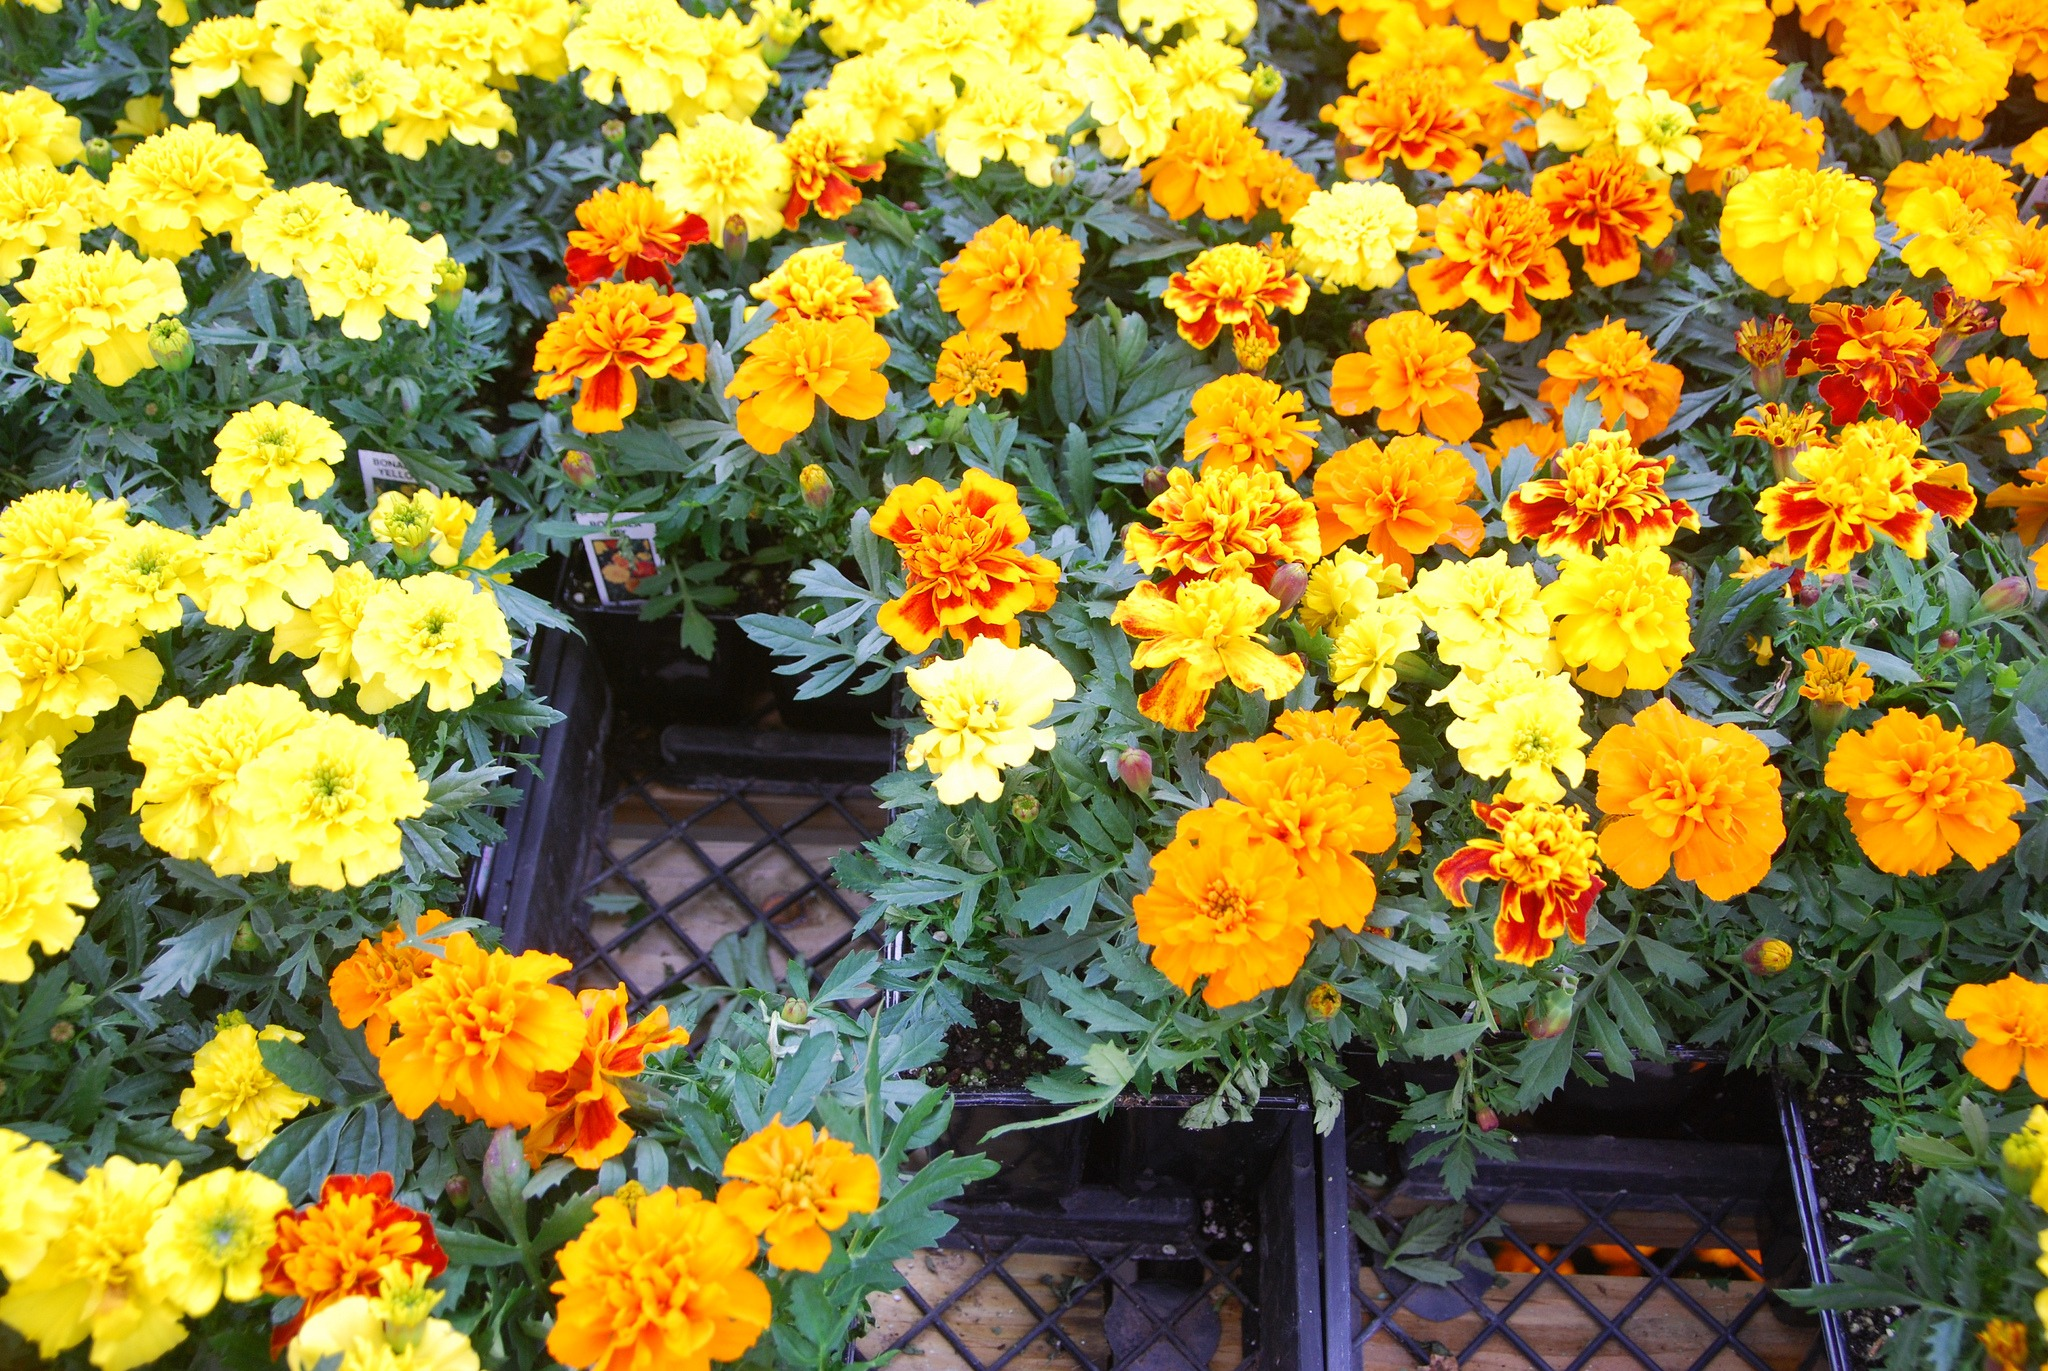 Grow marigolds as annuals